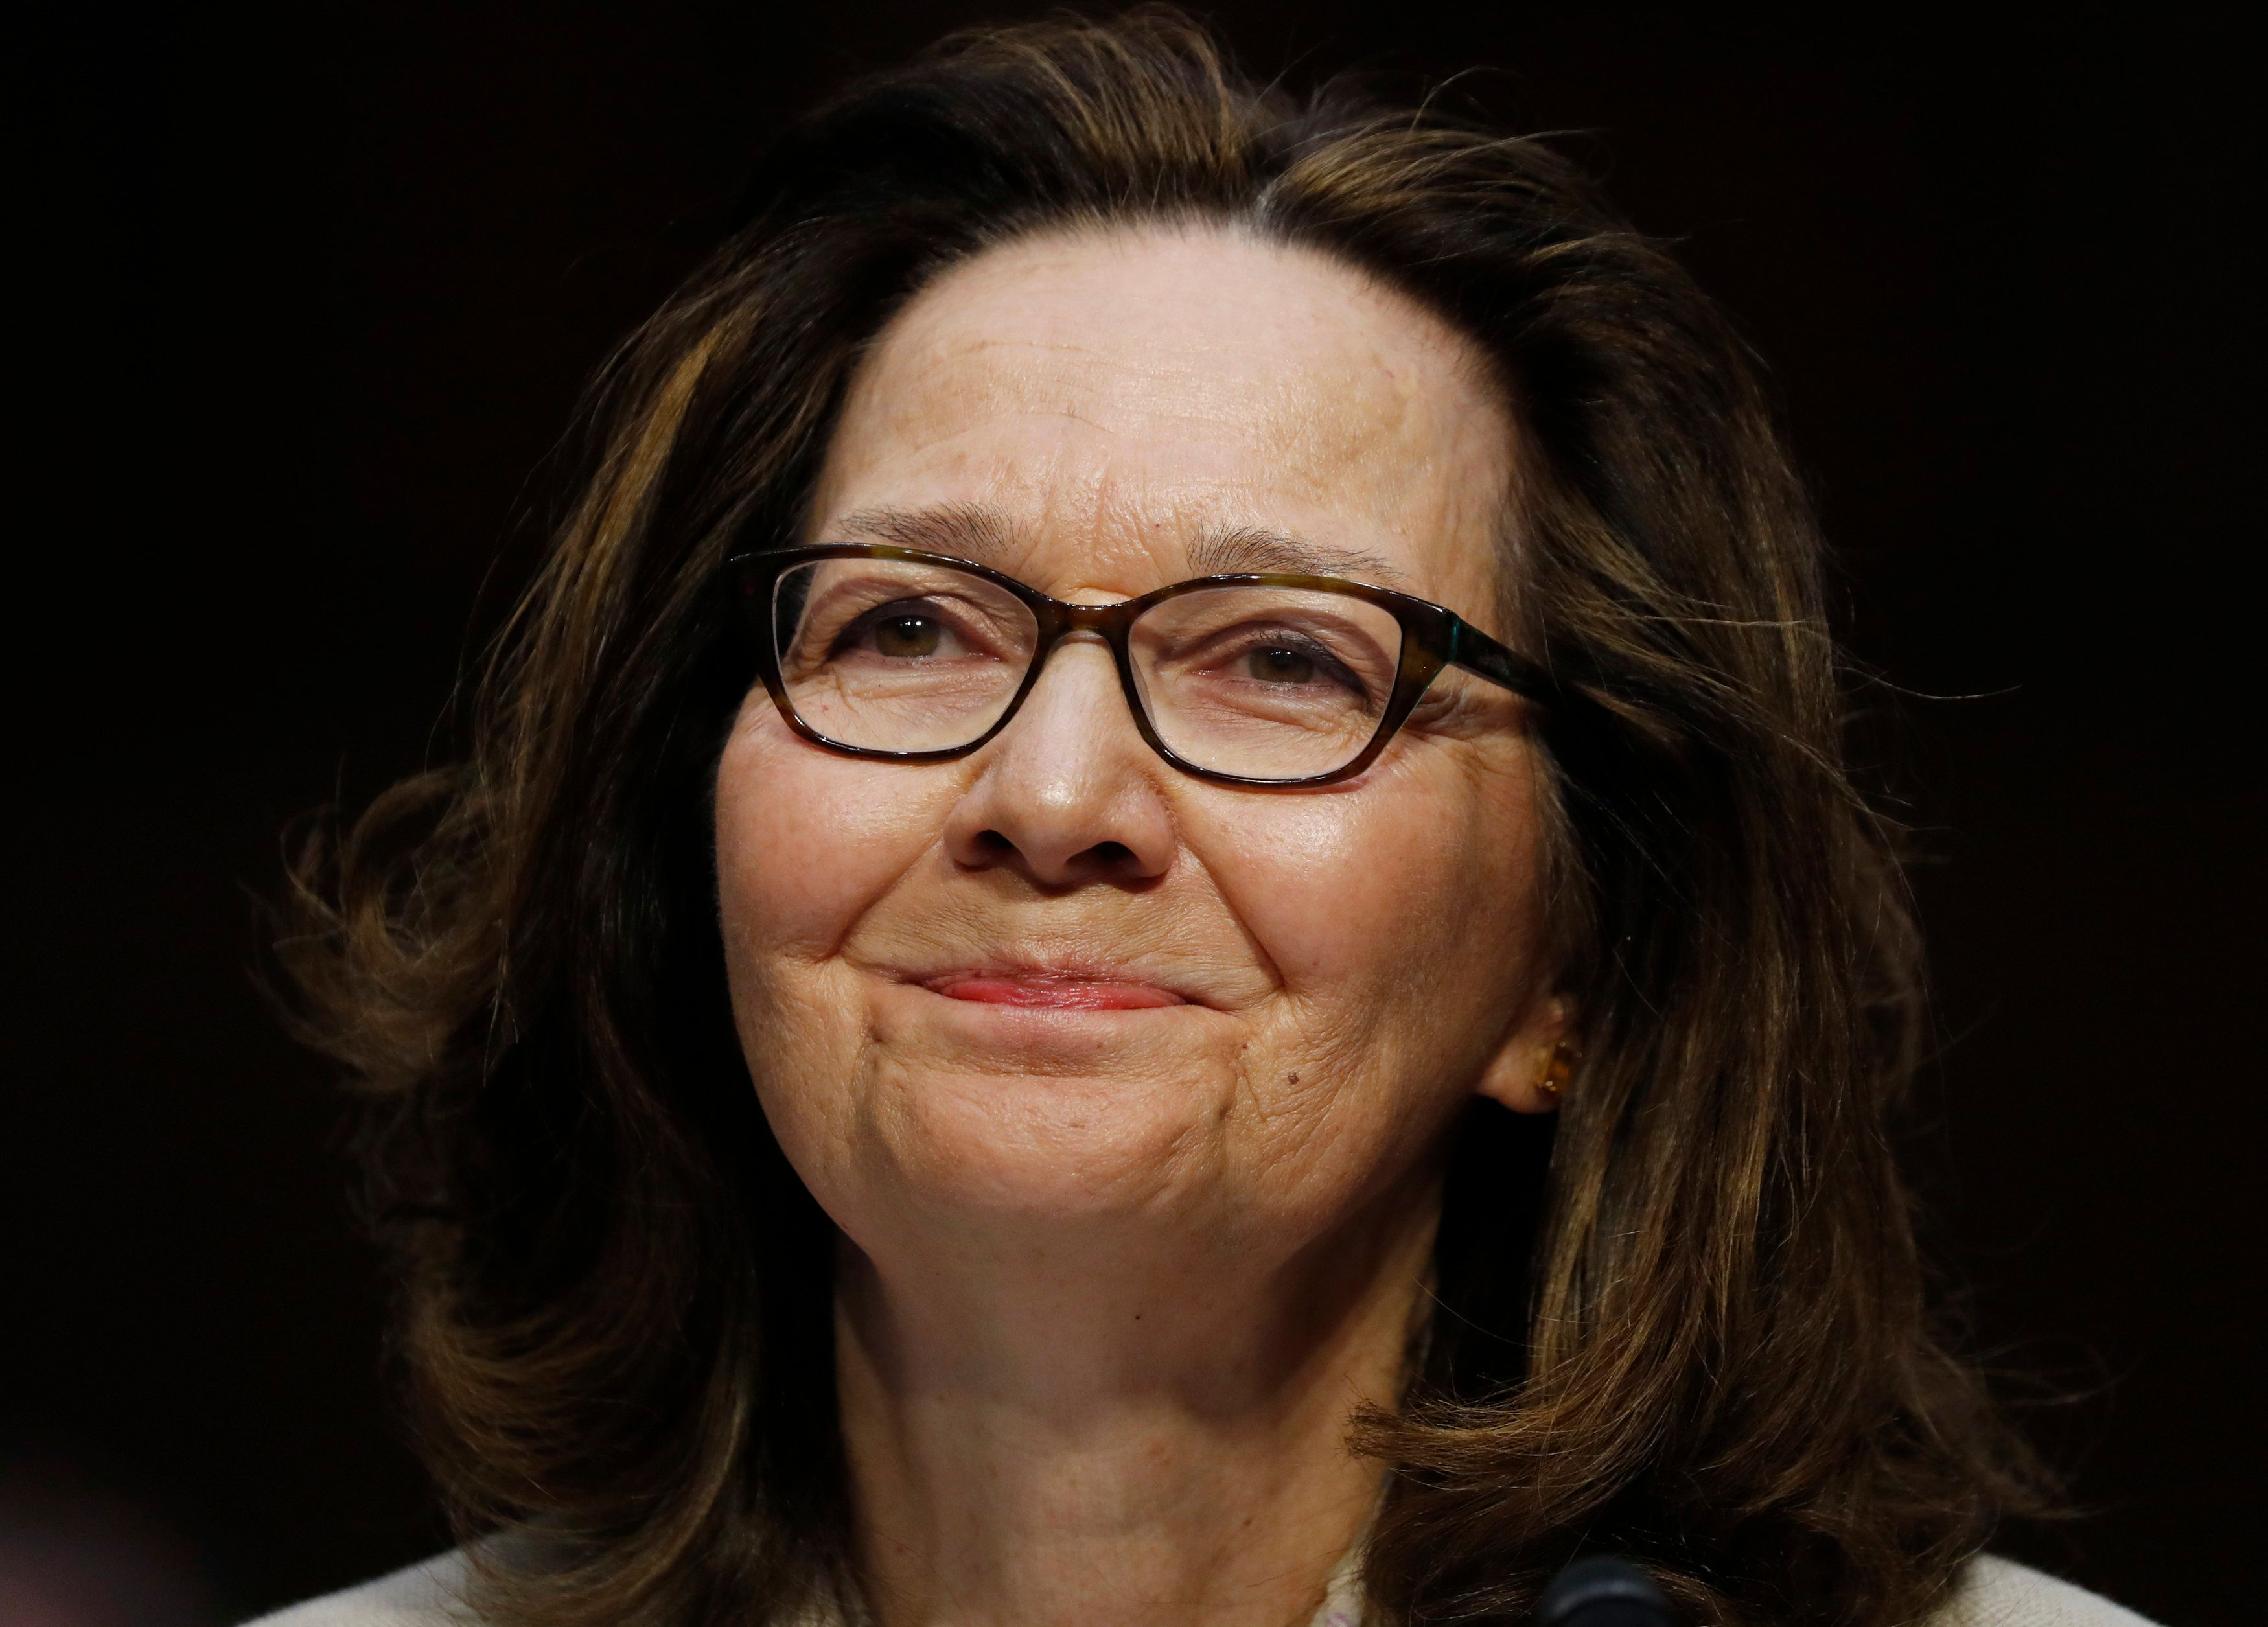 Acting CIA Director Gina Haspel testifies at her Senate Intelligence Committee confirmation hearing on Capitol Hill in Washington, U.S., May 9, 2018. REUTERS/Kevin Lamarque